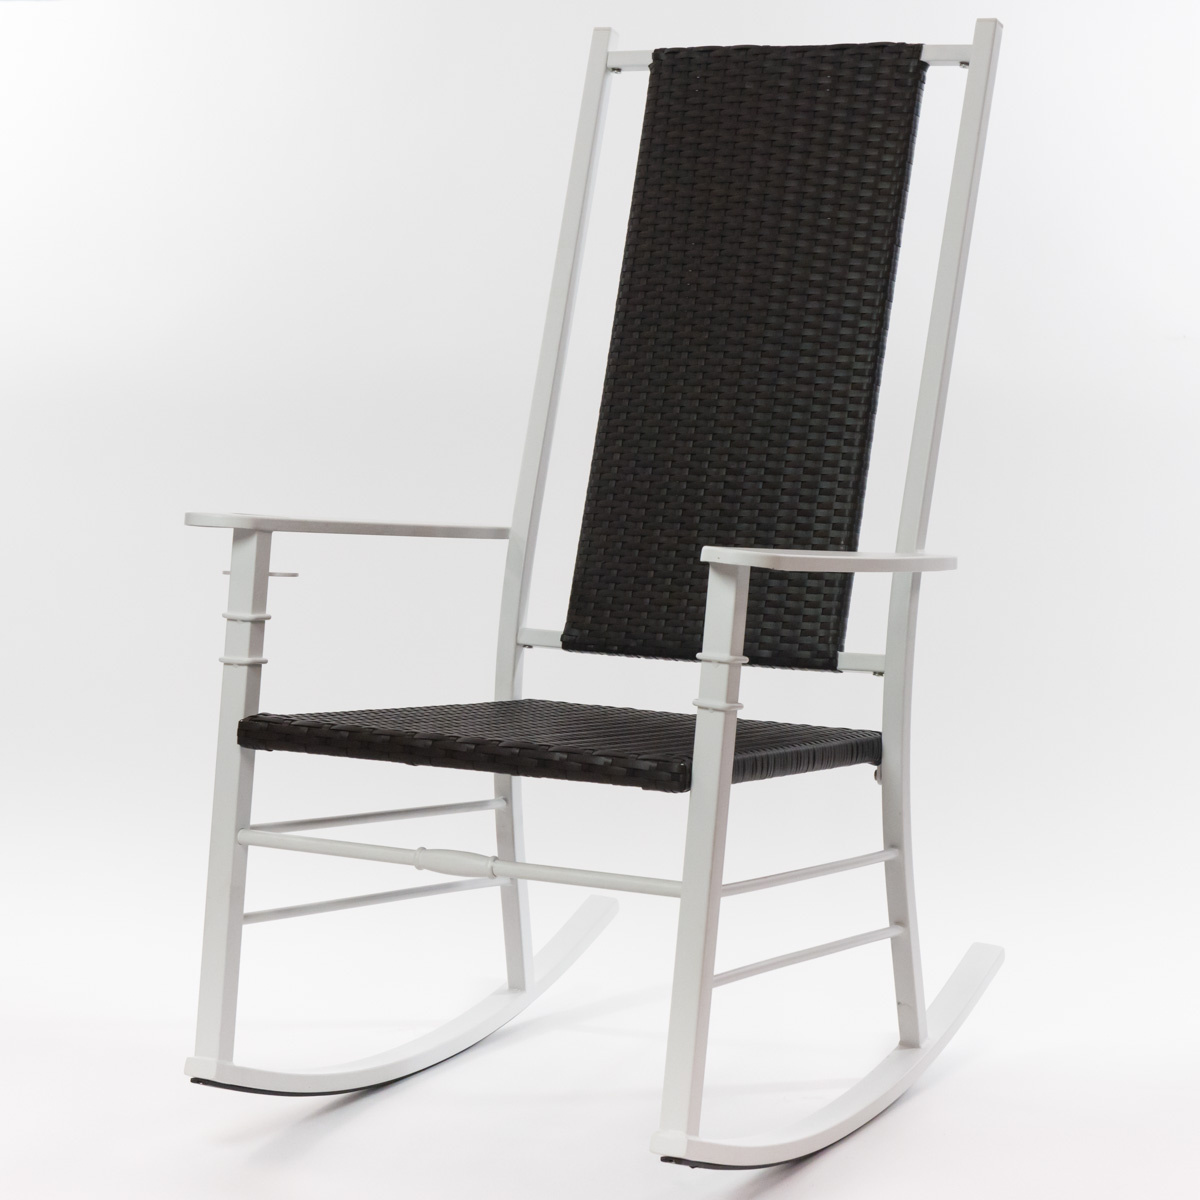 Strange White Palm Harbor Wicker Rocking Chair Pabps2019 Chair Design Images Pabps2019Com